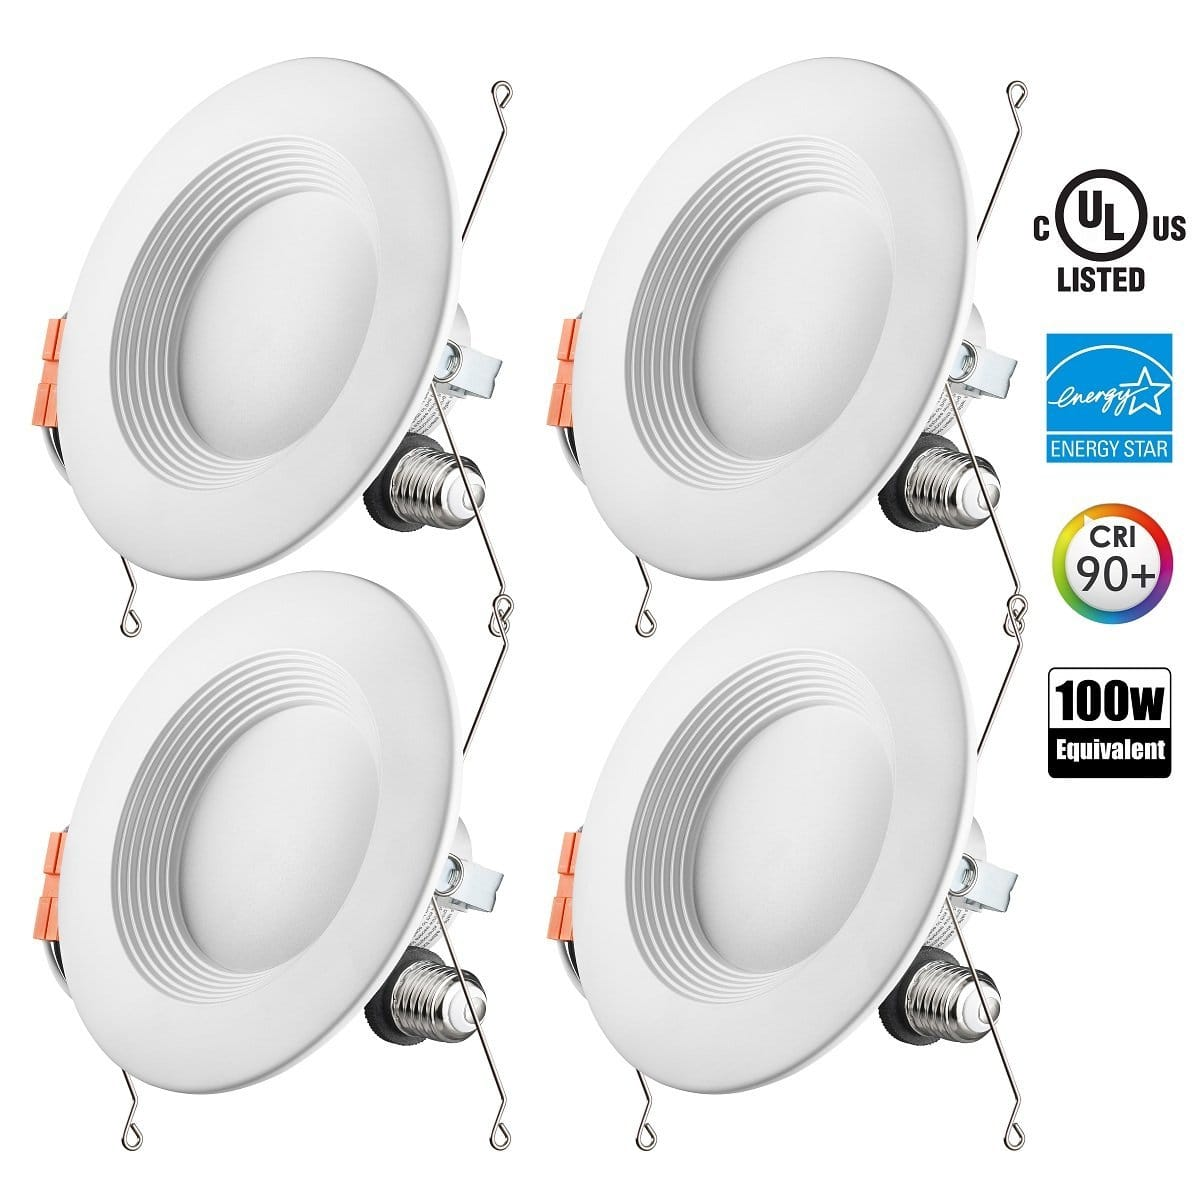 Otronics 4 - Pack 5-6 inch Dimmable 15W, 1100 Lumens LED lights $26.50